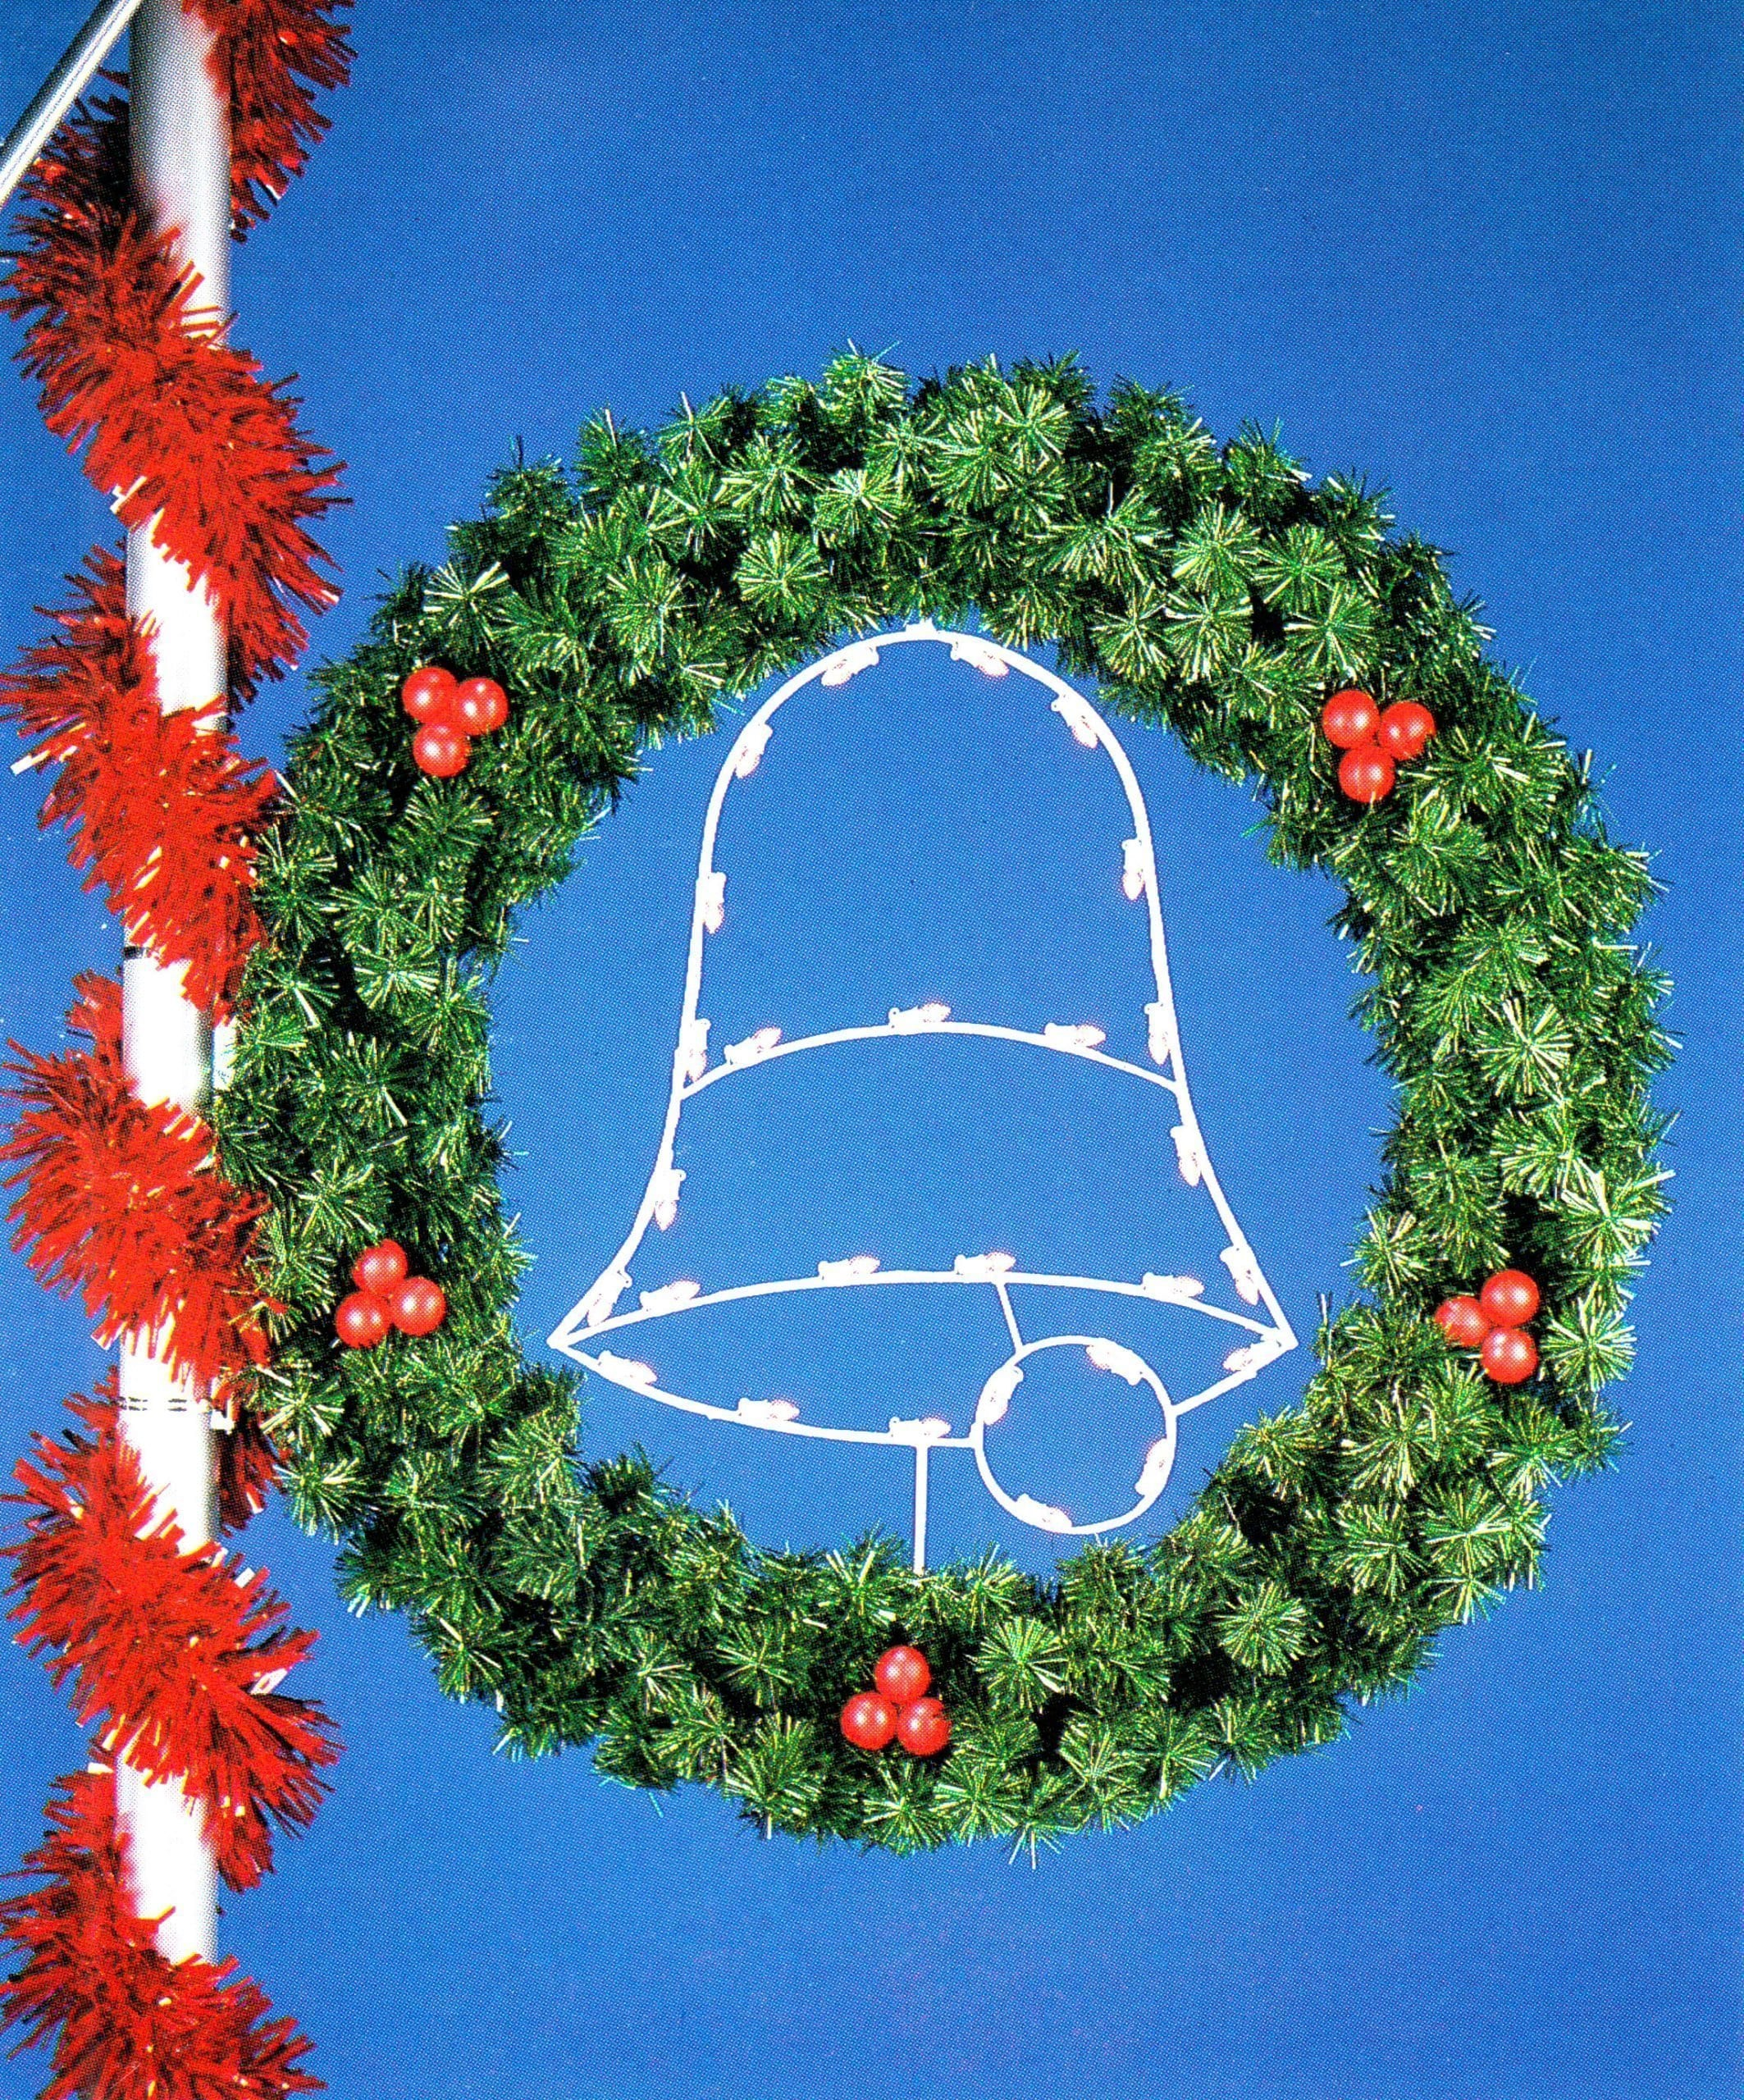 P-384 Silhouette Bell Wreath